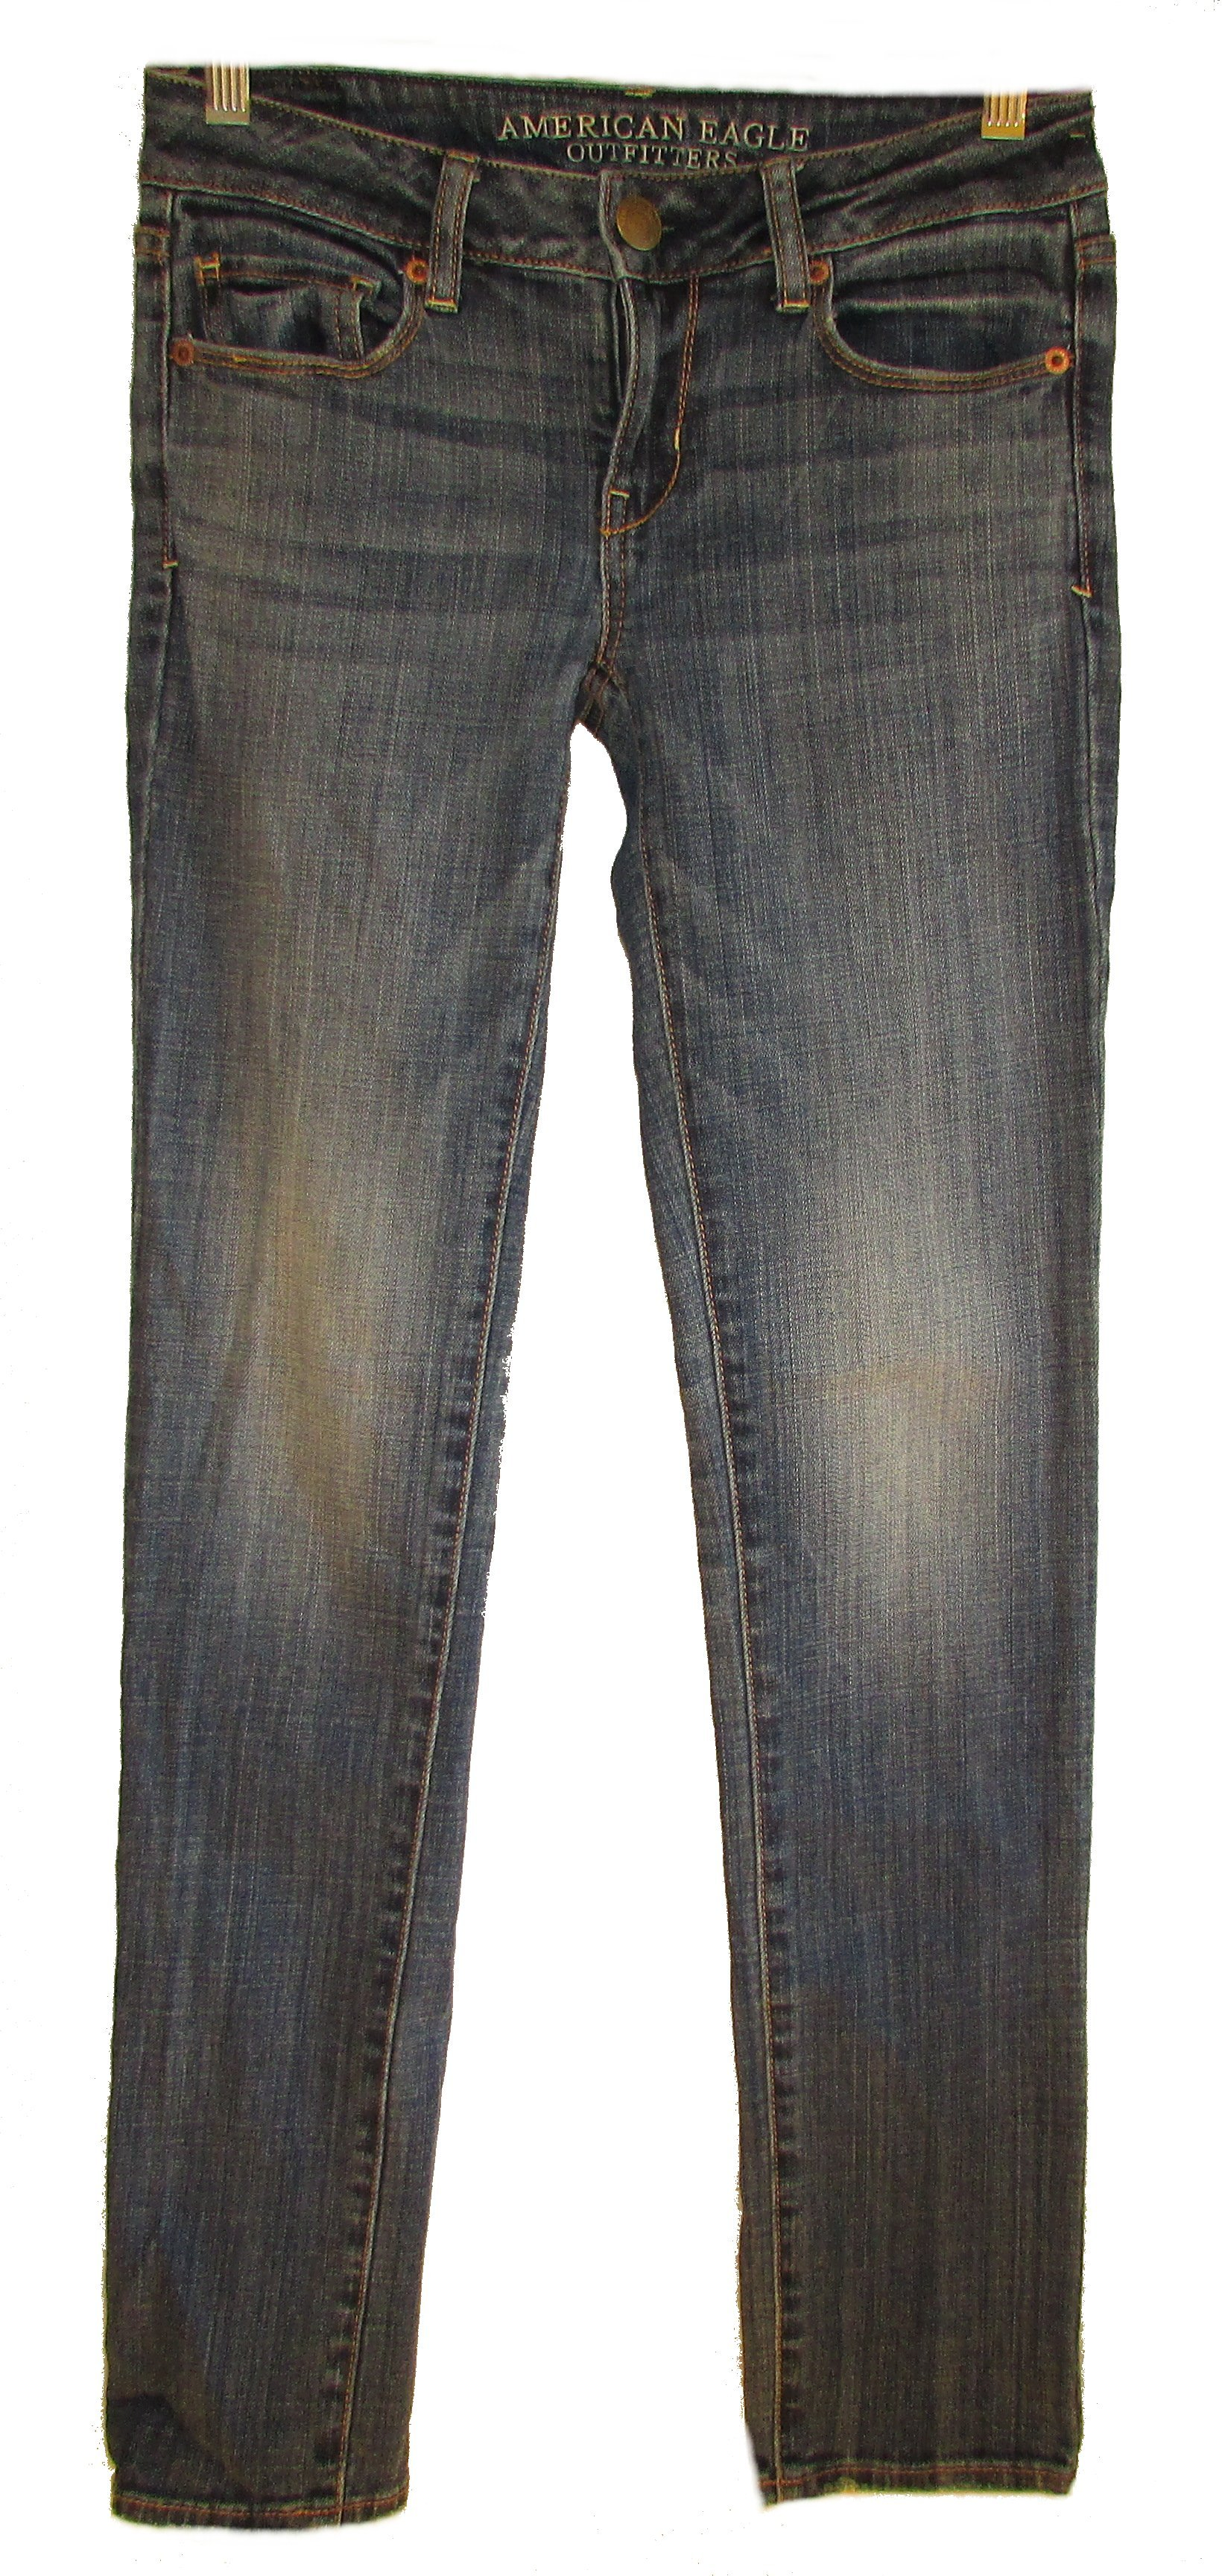 AMERICAN EAGLE OUTFITTERS Skinny Stretch Jeans - 0